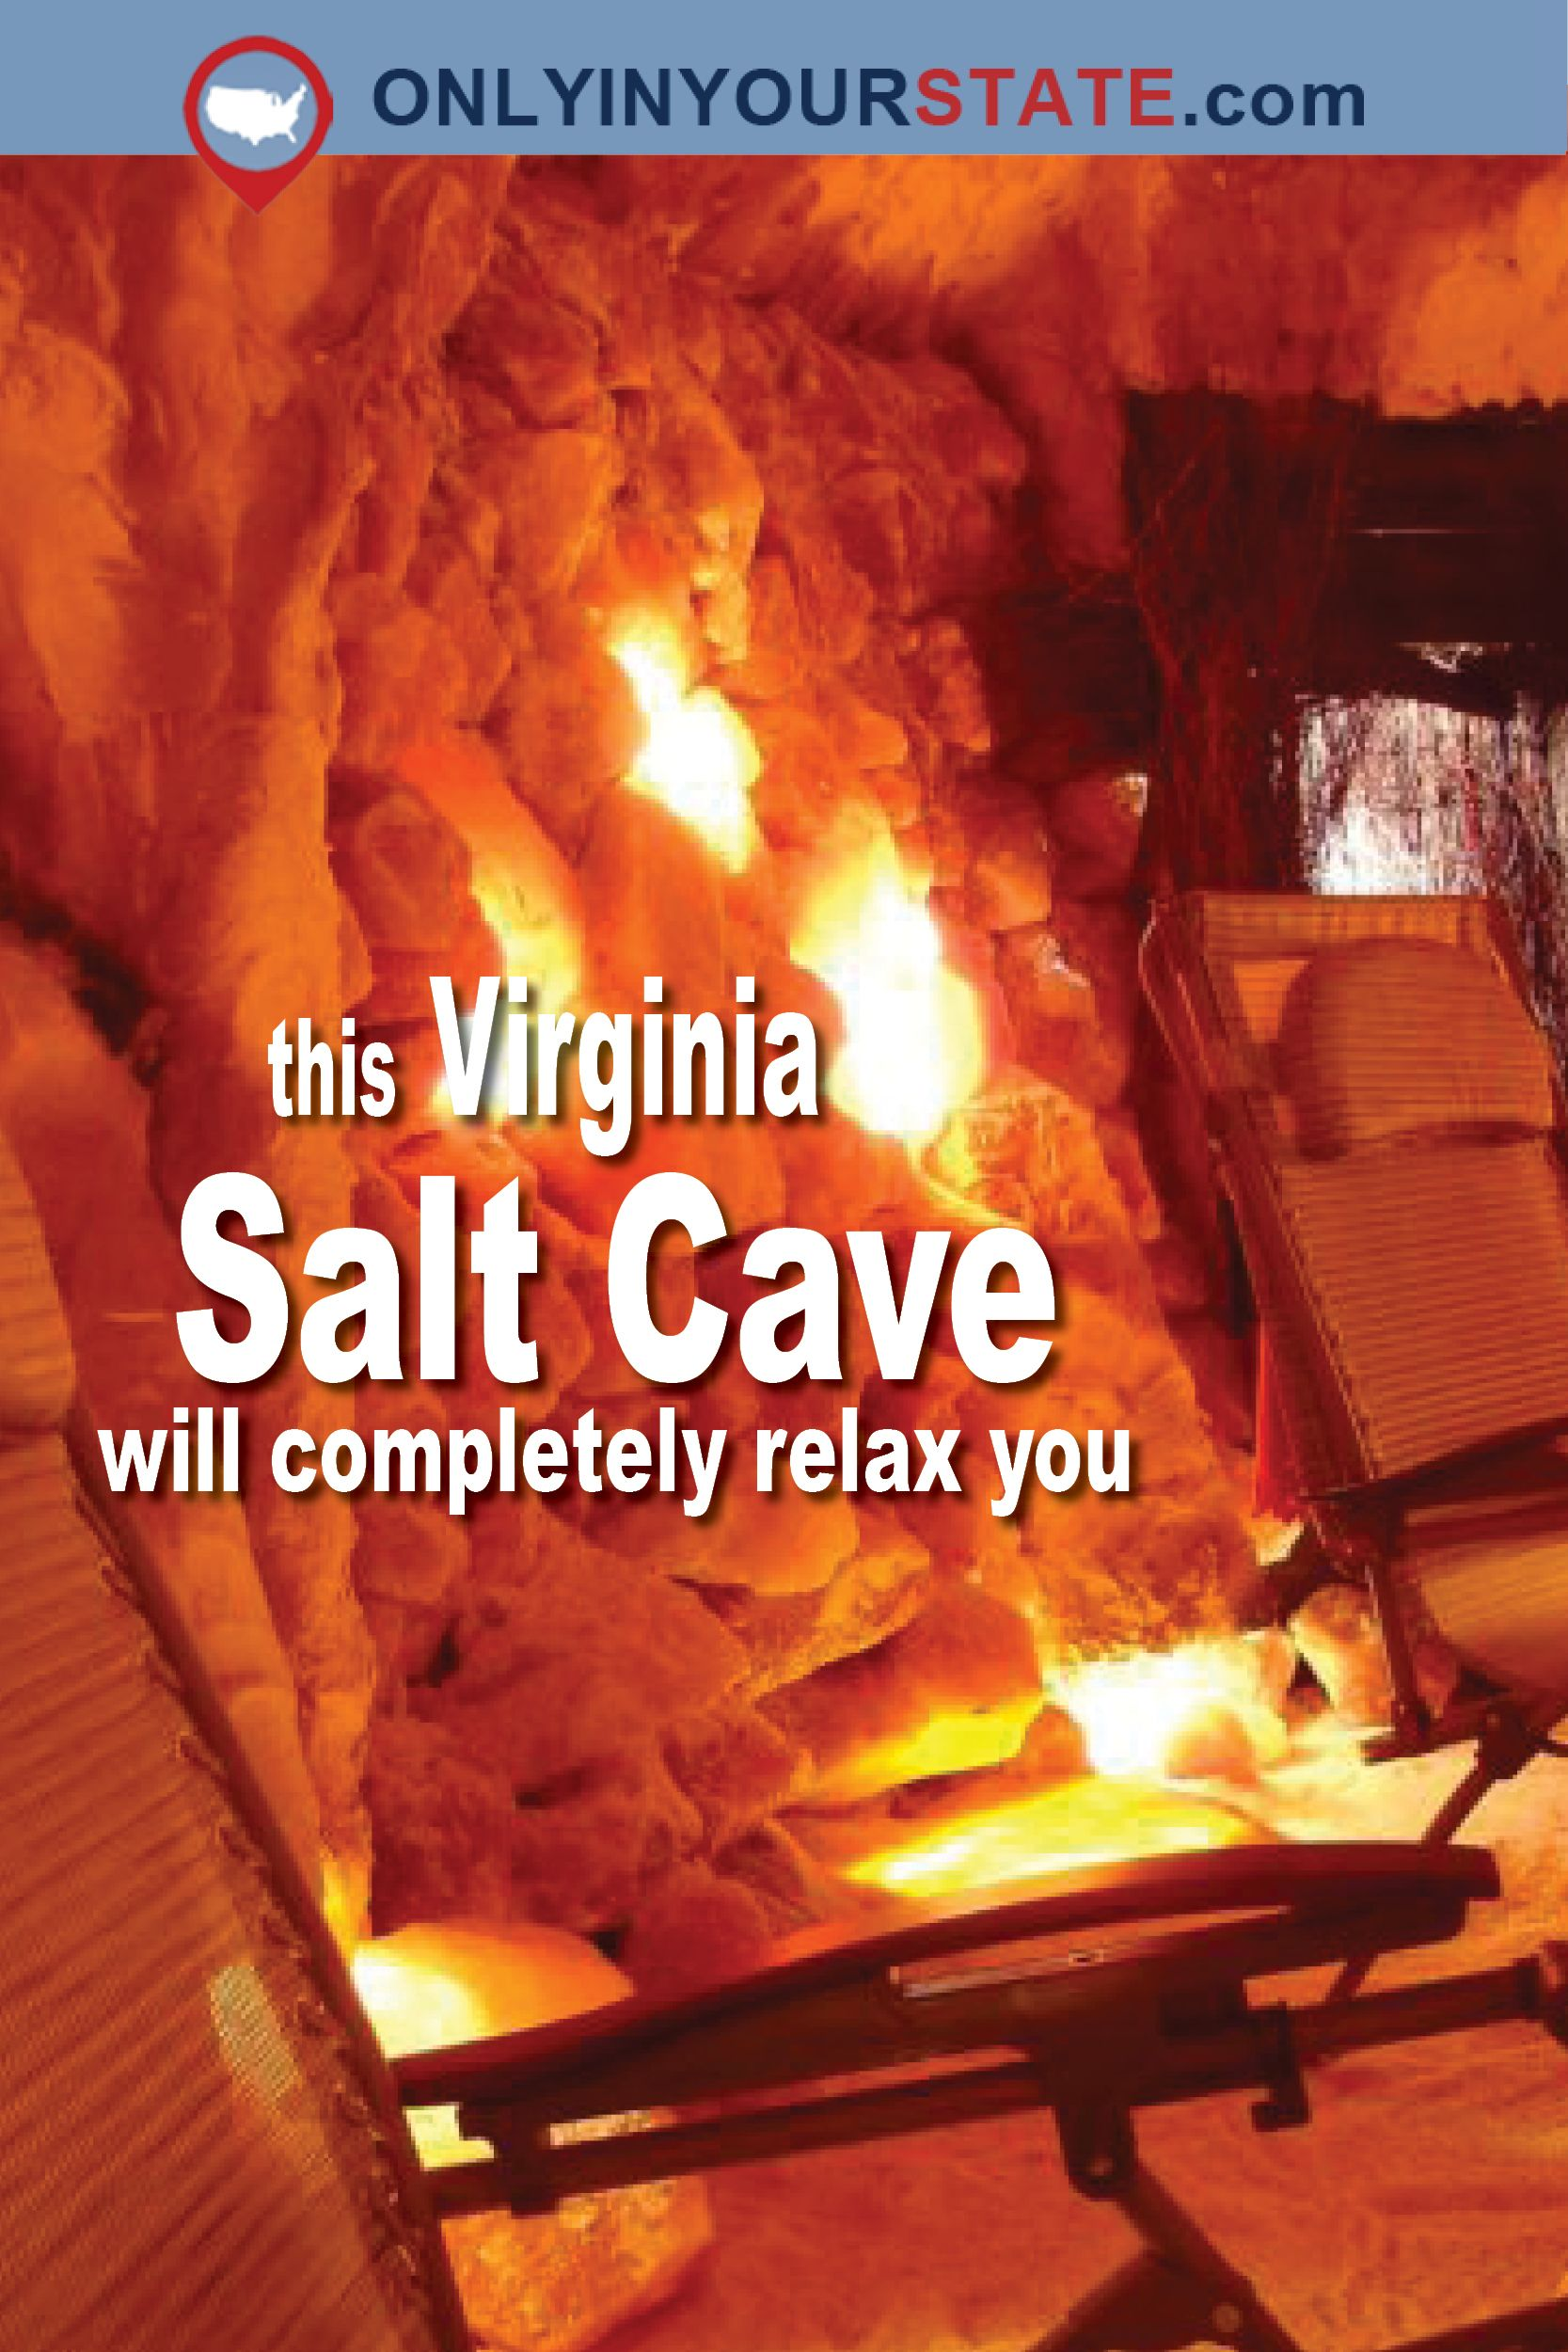 The Incredible Salt Cave In Virginia That Completely Relaxes You in